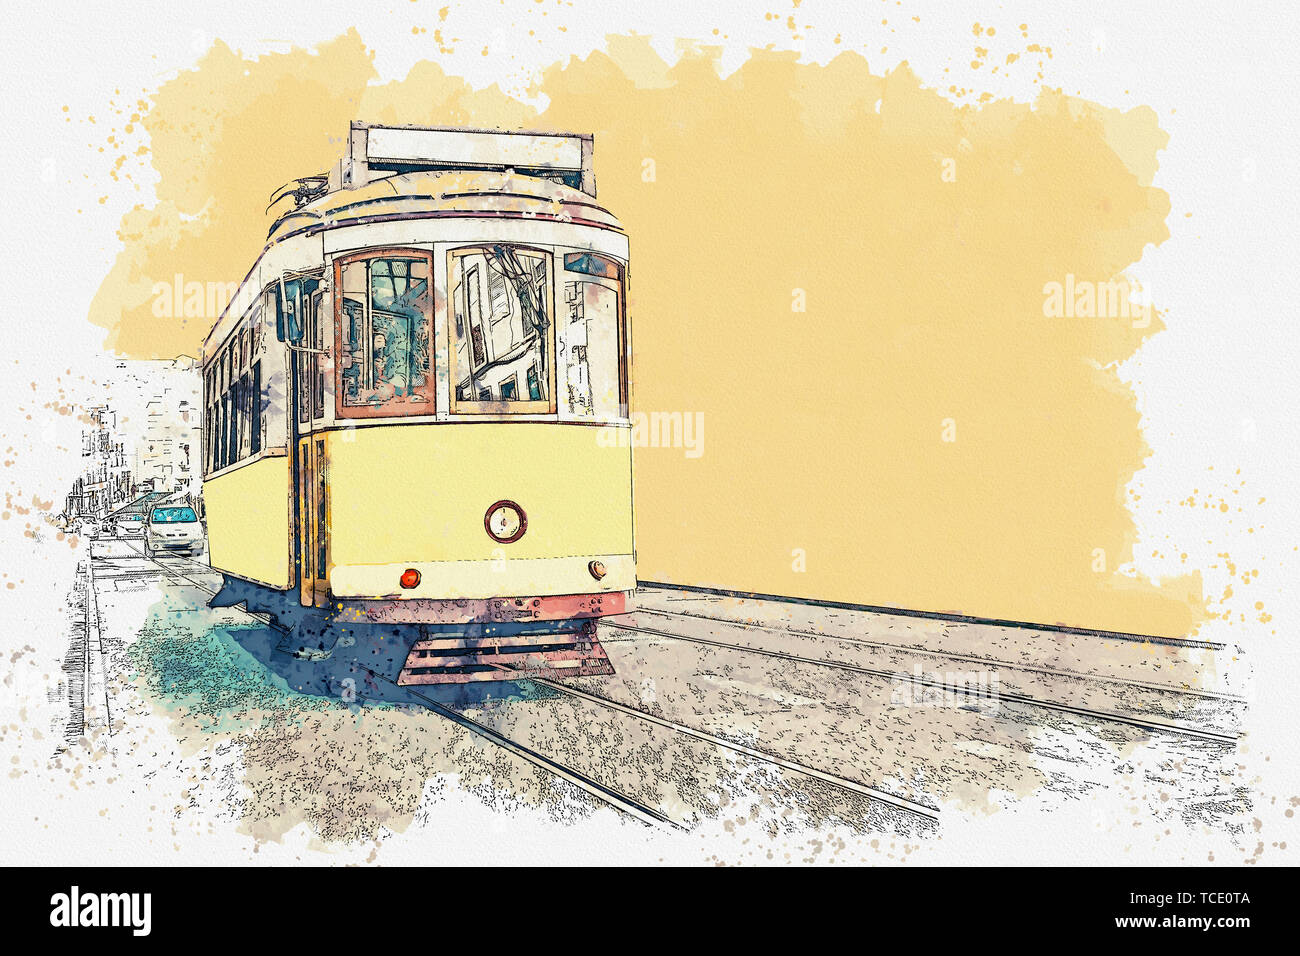 Watercolor sketch or illustration of a traditional yellow tram in Lisbon in Portugal. Stock Photo